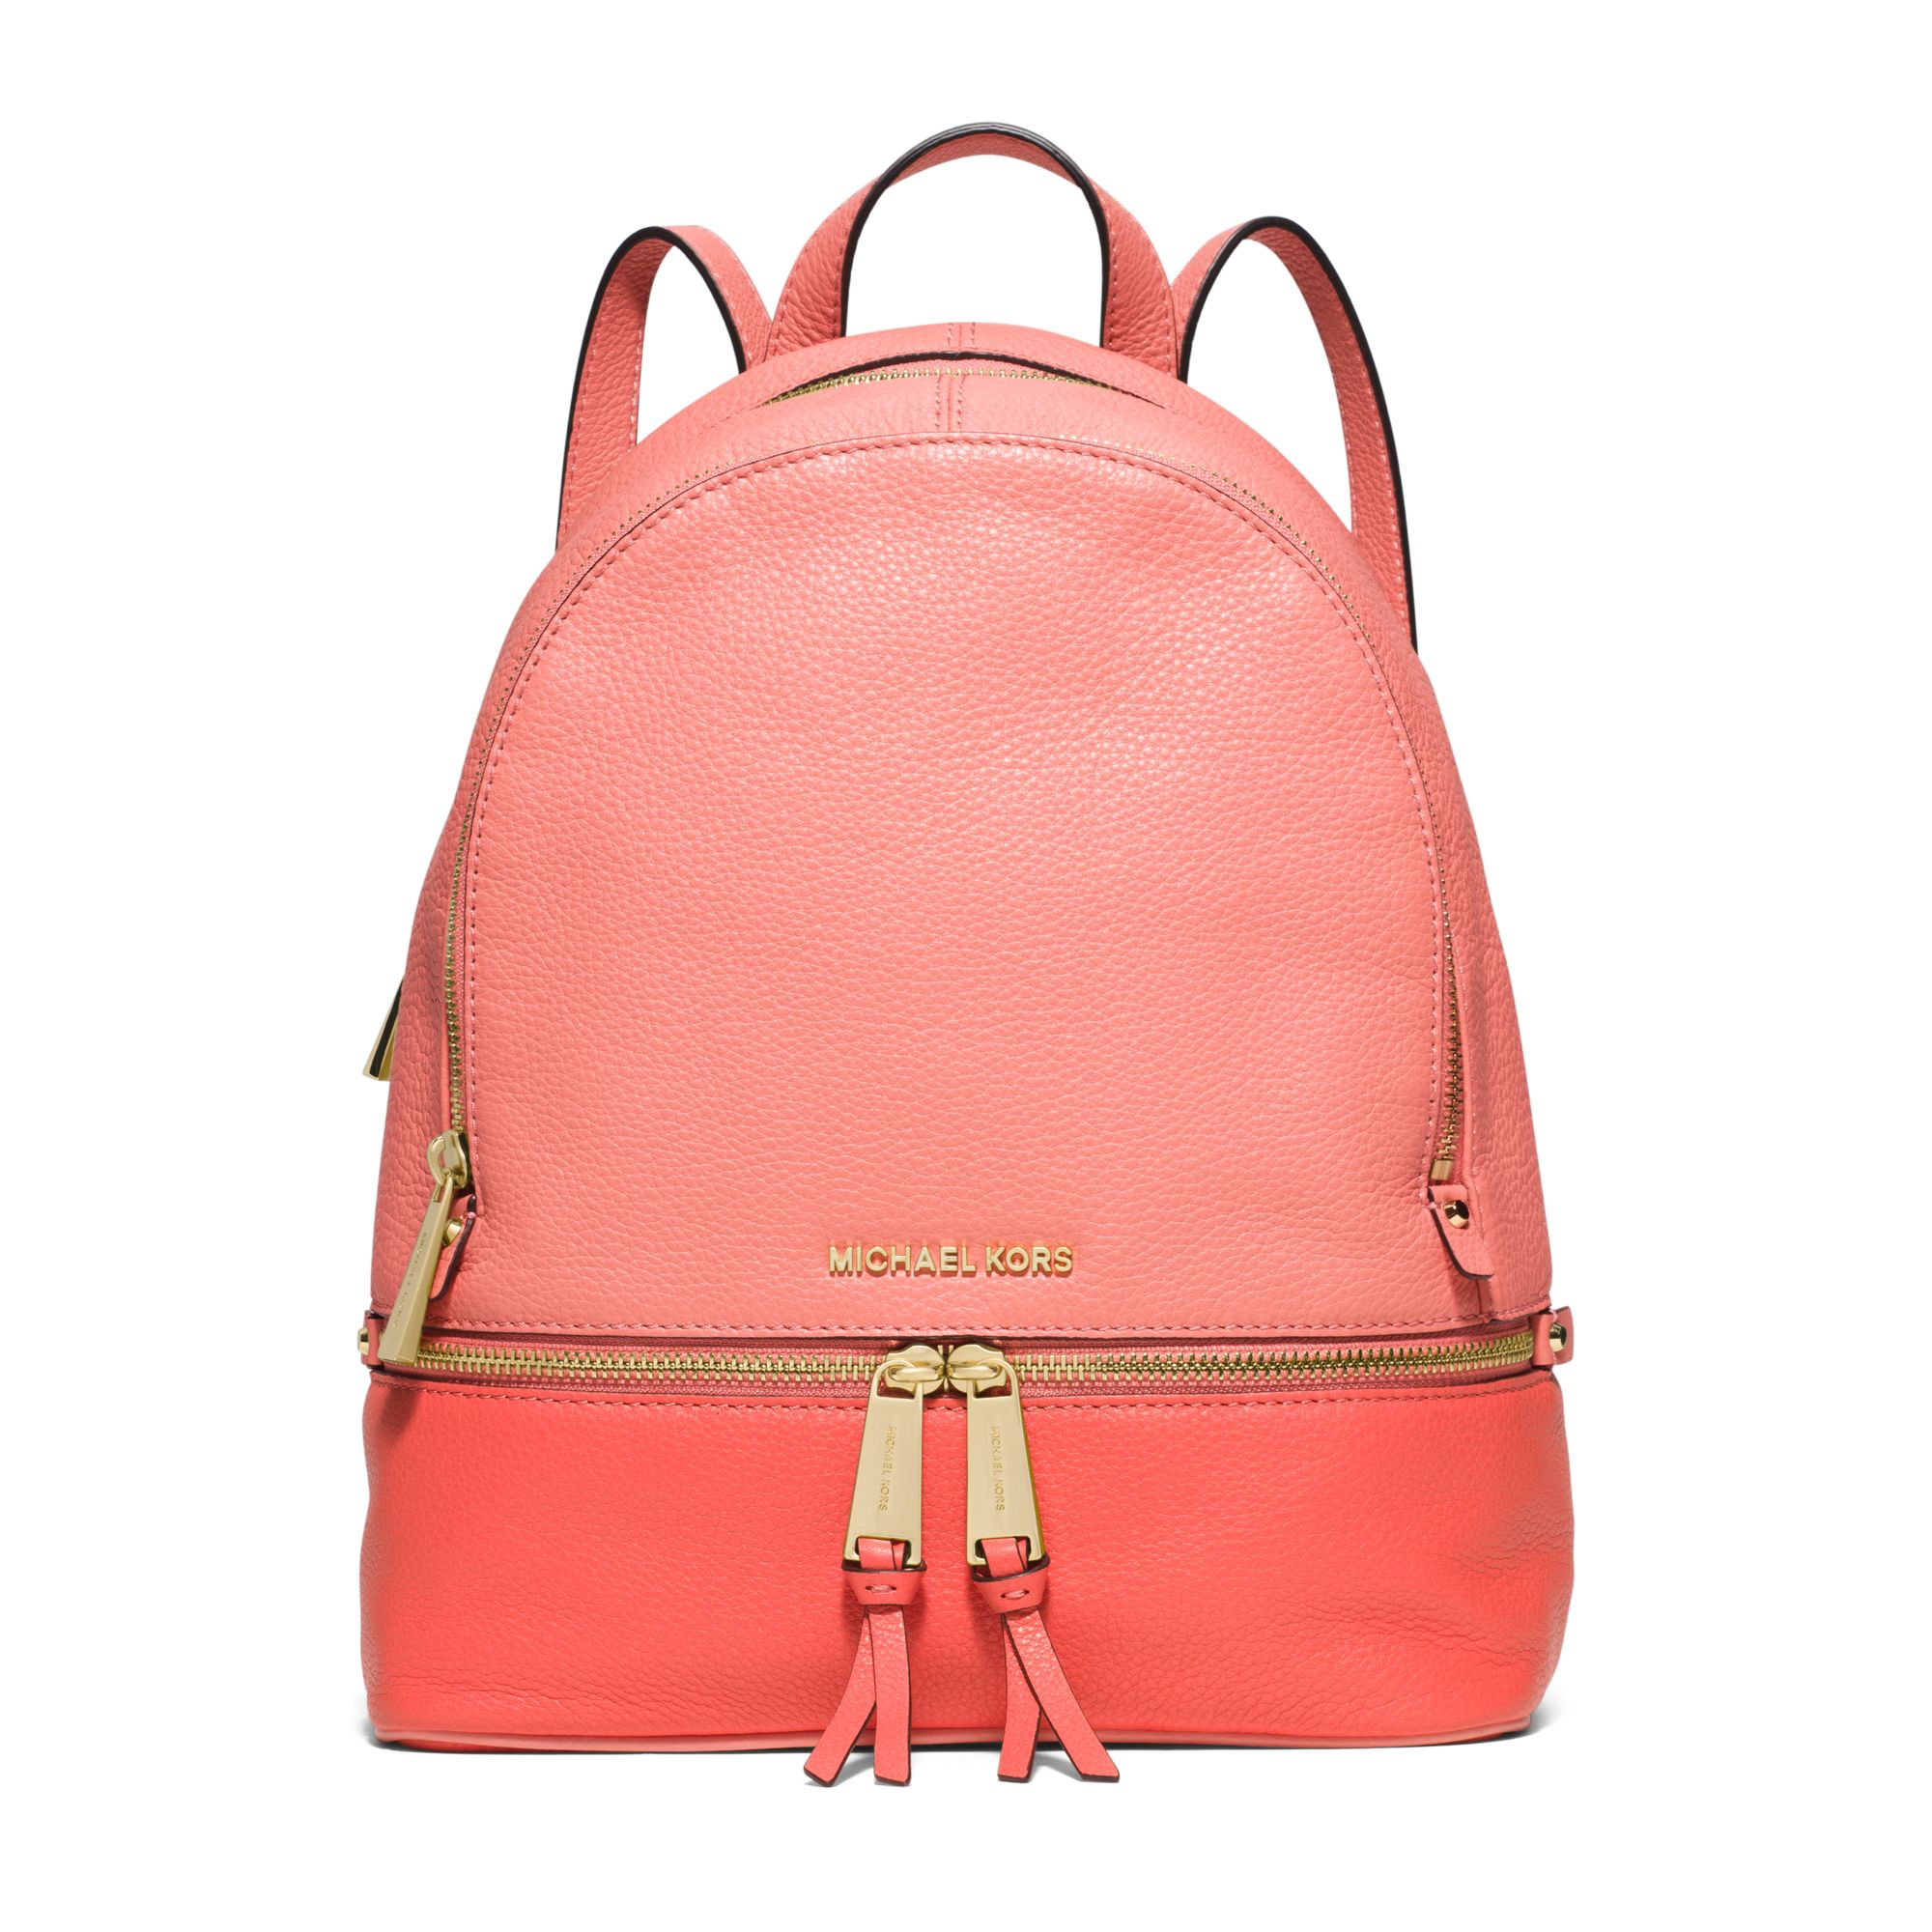 4a6eb7a747b23c Michael Kors Rhea Medium Color-block Leather Backpack in Pink - Lyst